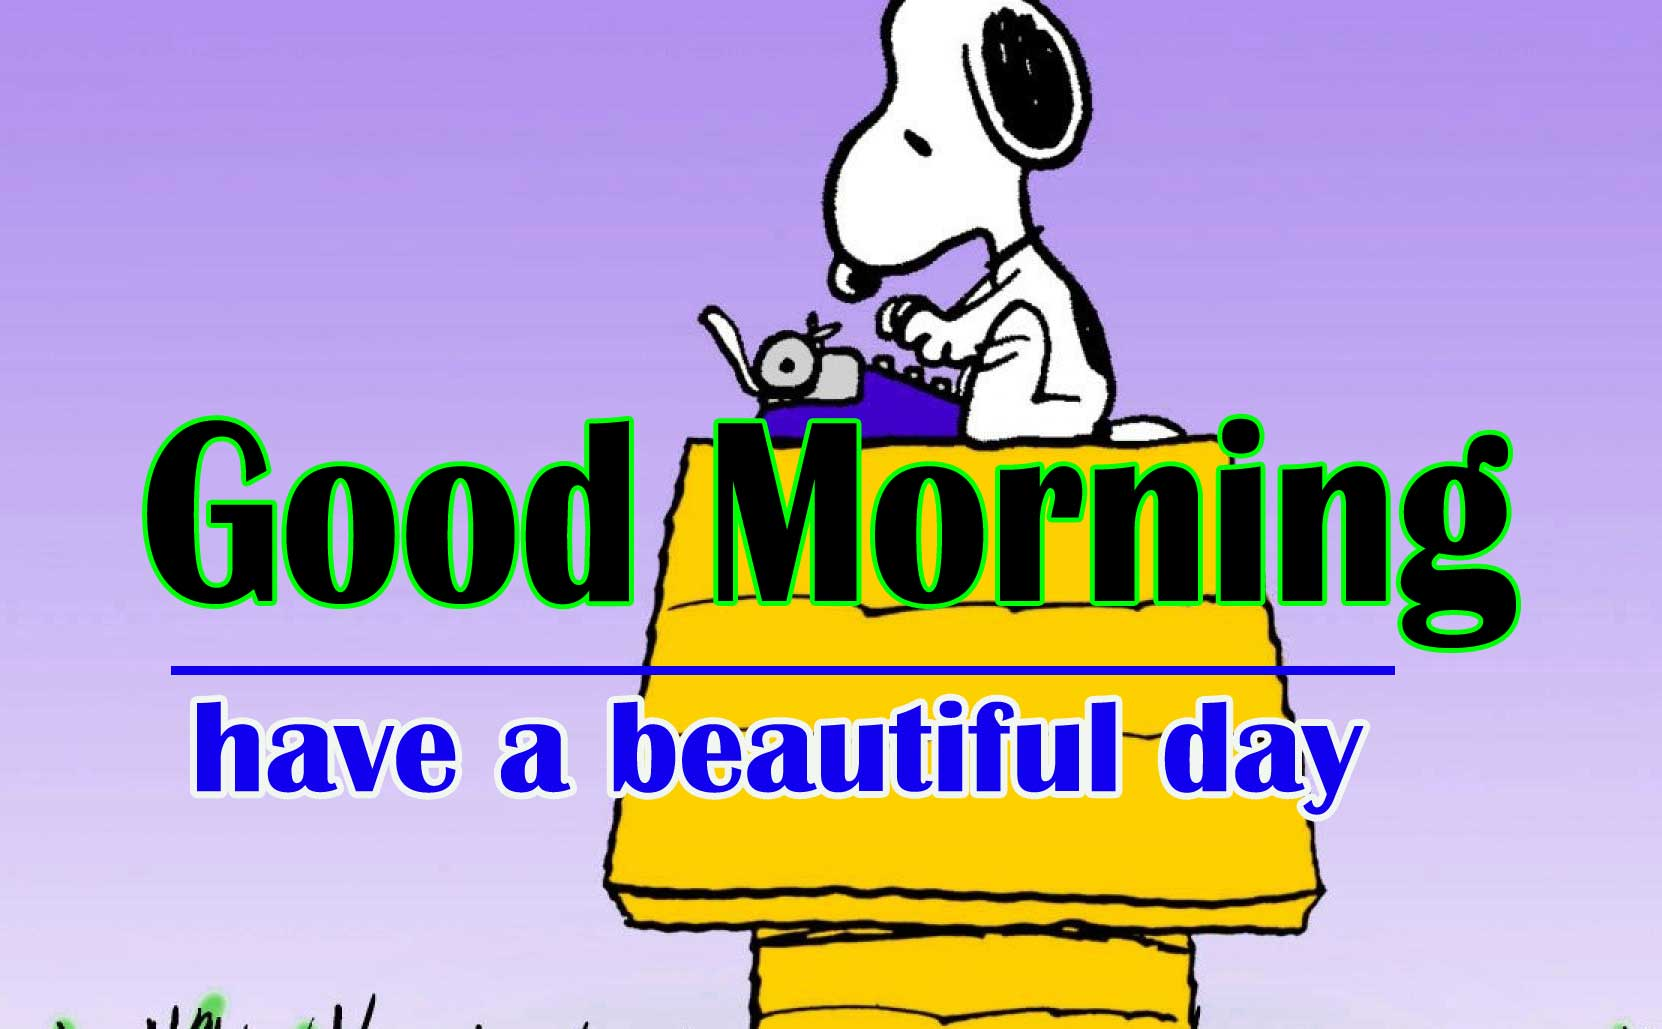 Snoopy good Morning 8